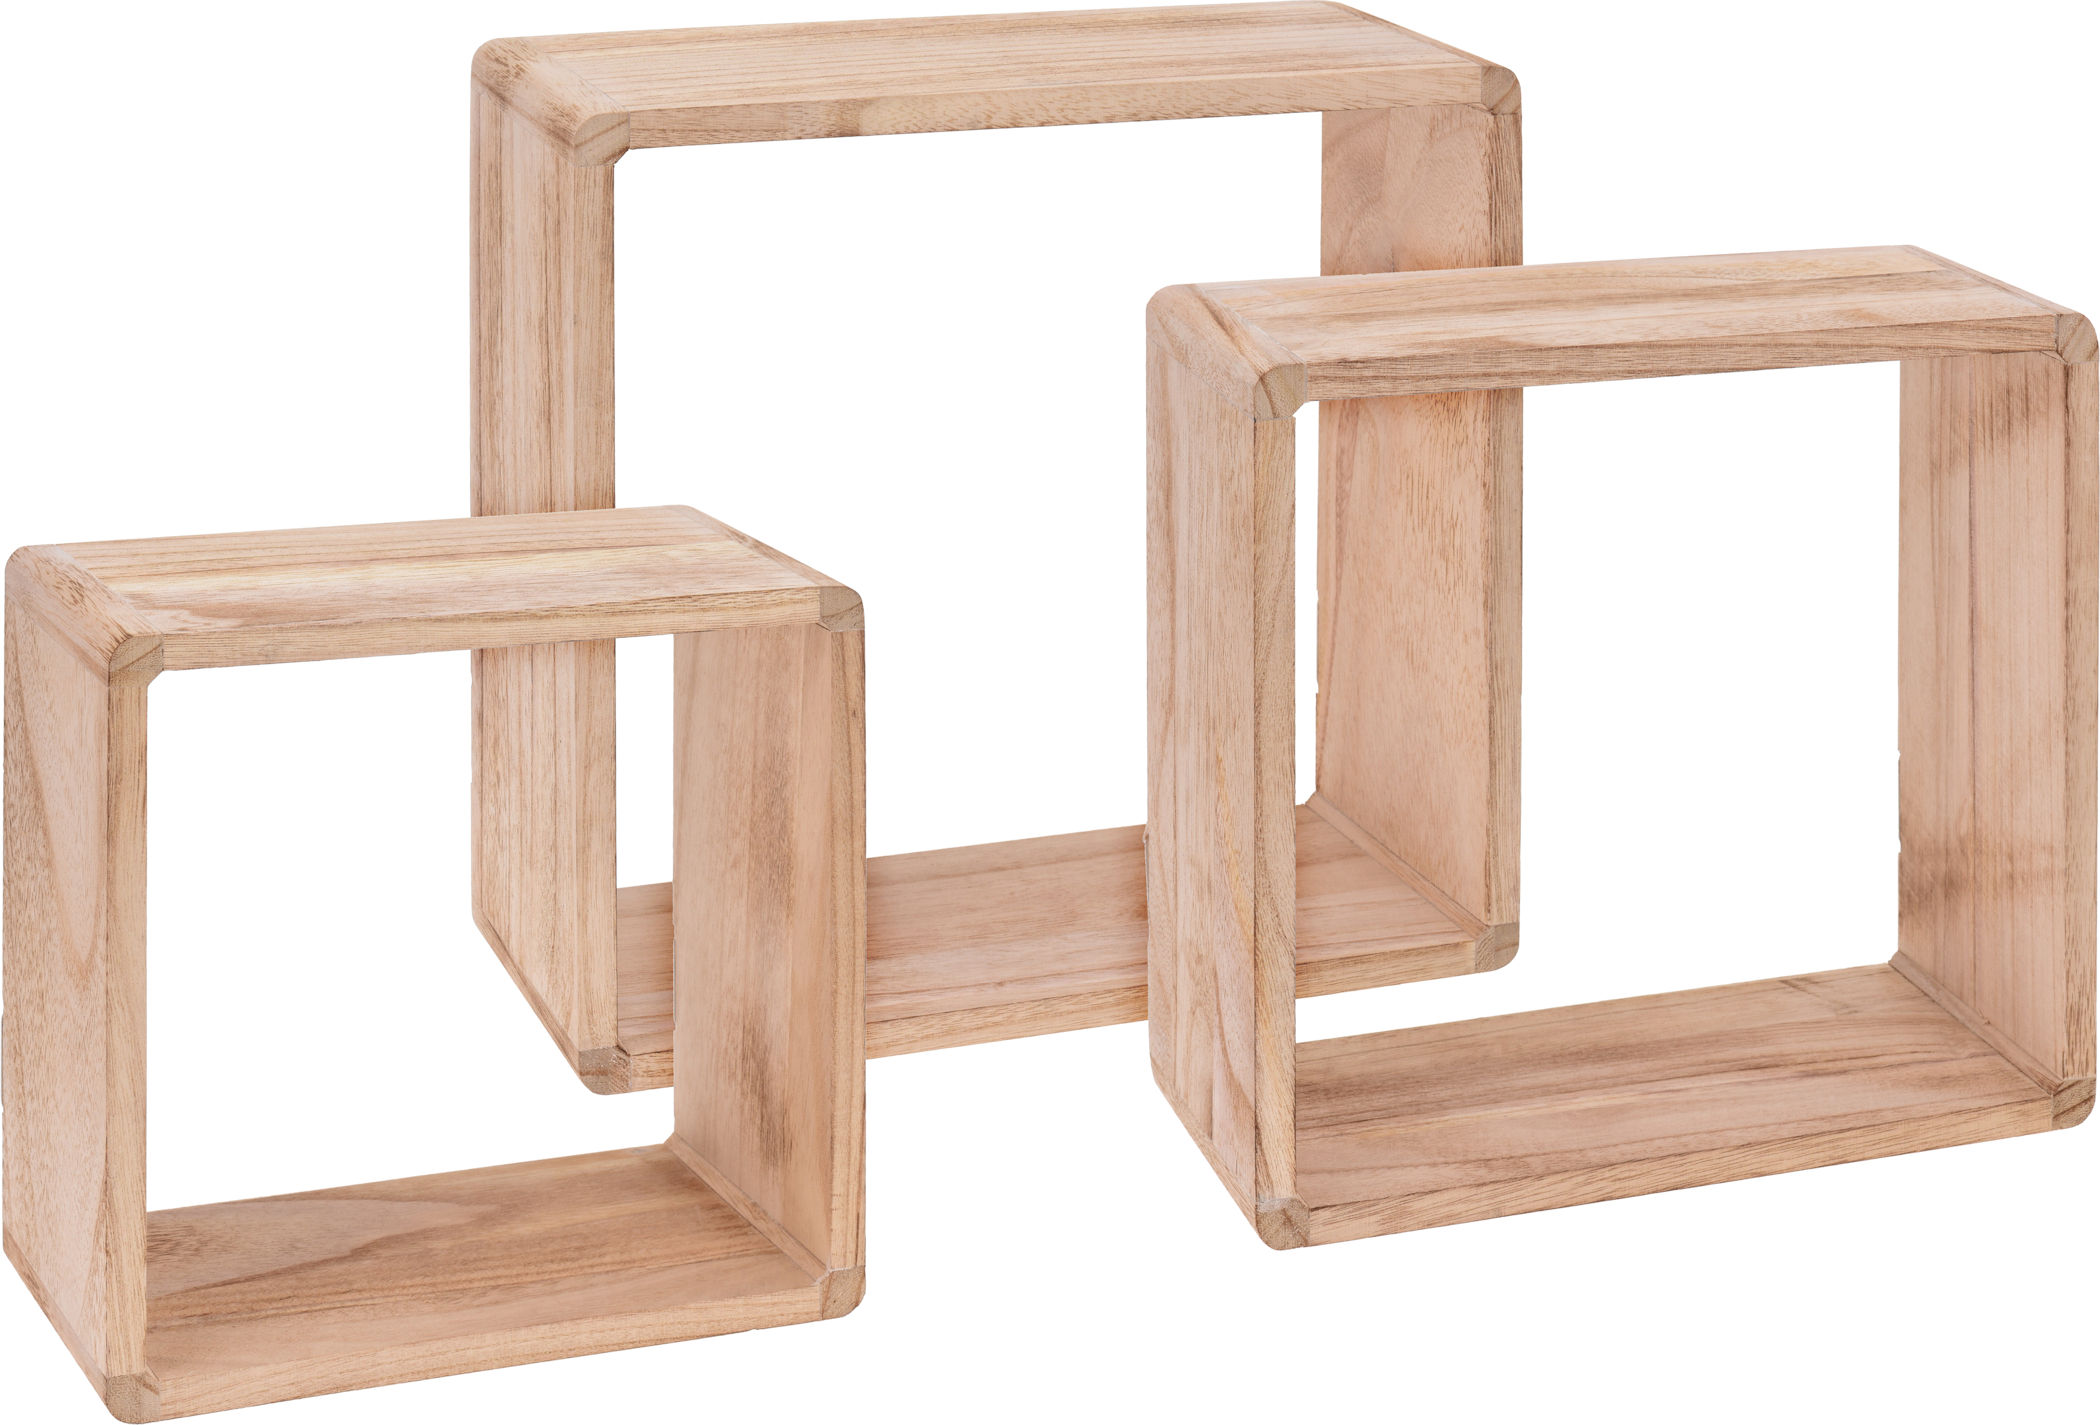 Wandregal Würfel Würfel Wandregal 3er Set Aus Holz 30 27 24 Cm Cube